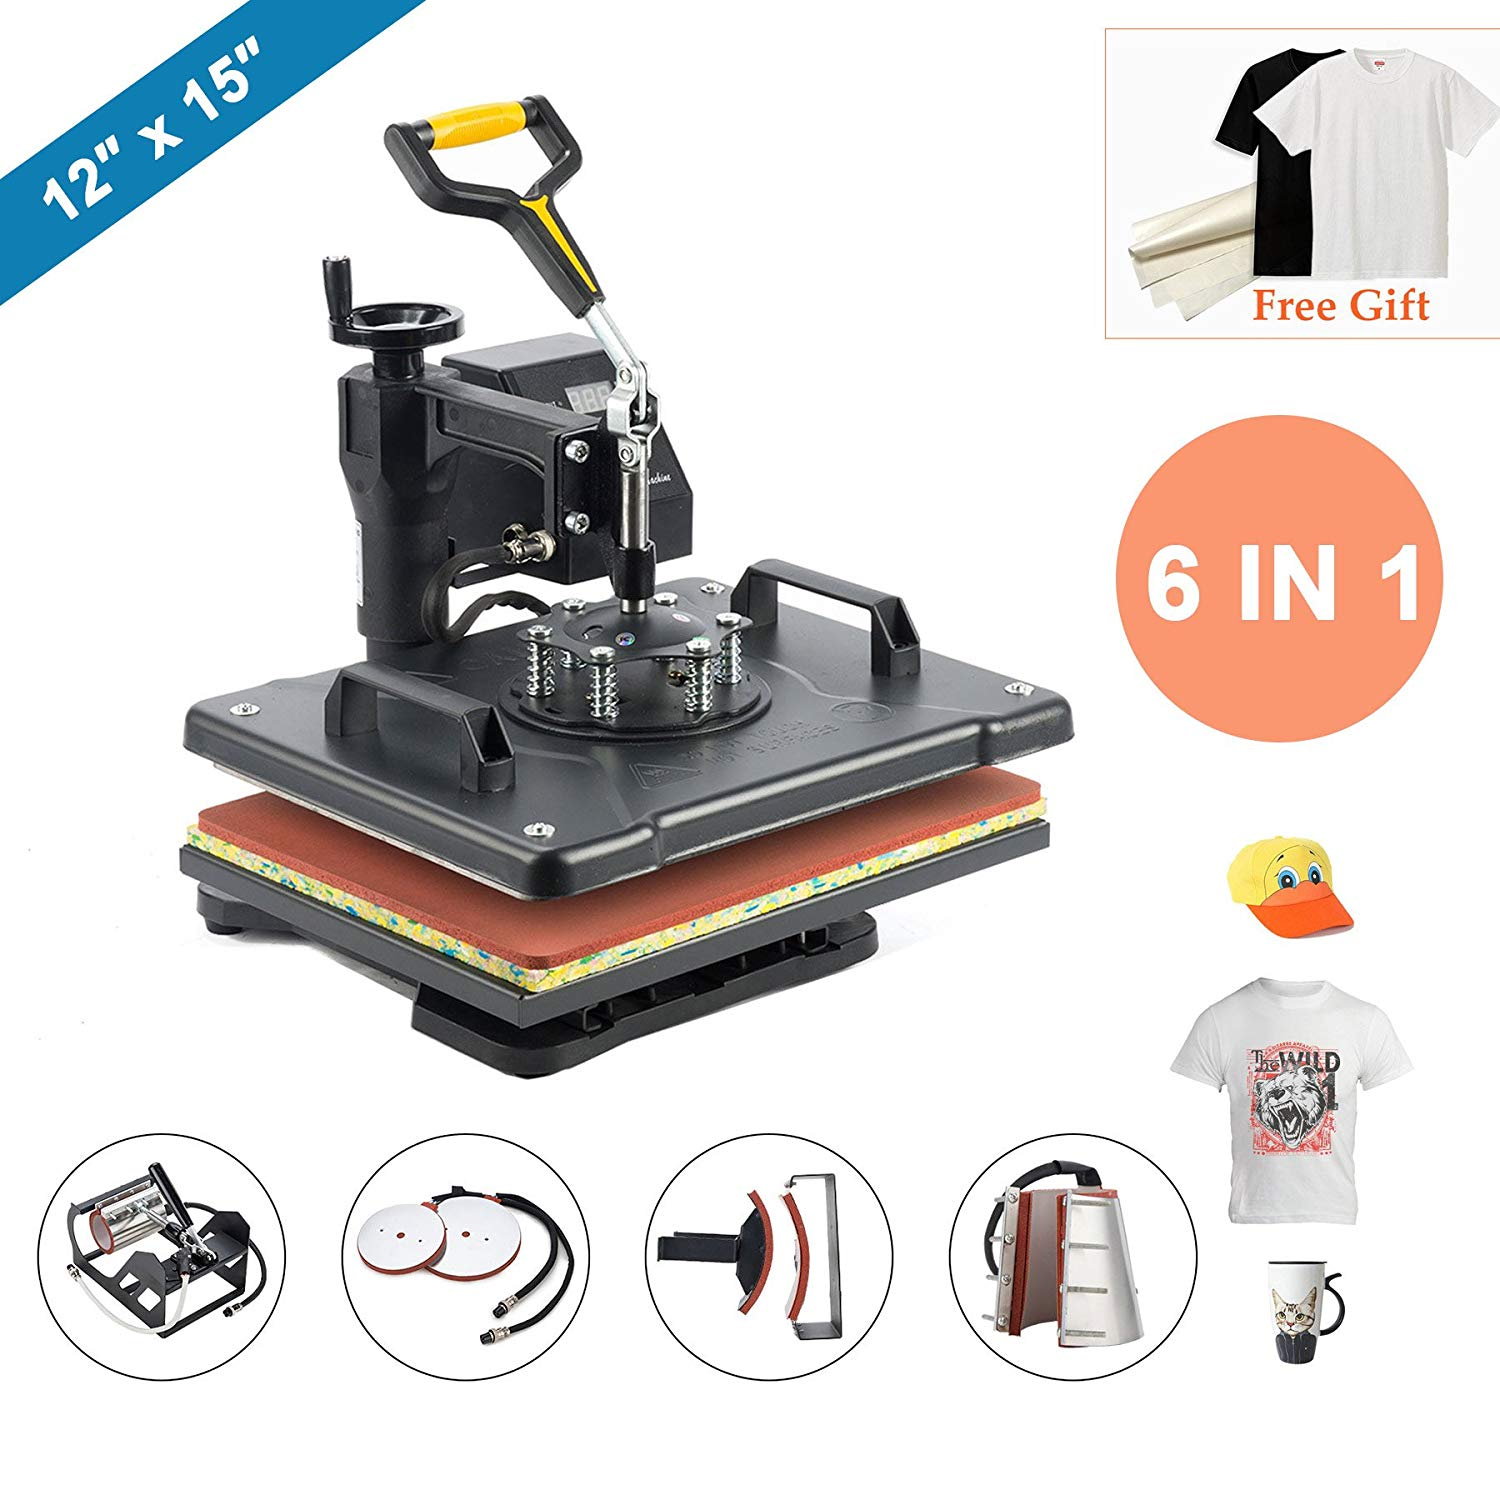 CO-Z Heat Press 6 in 1 Multifunction Sublimation Heat Press Machine Desktop Iron Baseball Hat Press 1250W Digital Swing Away Transfer T Shirt Hat Mug